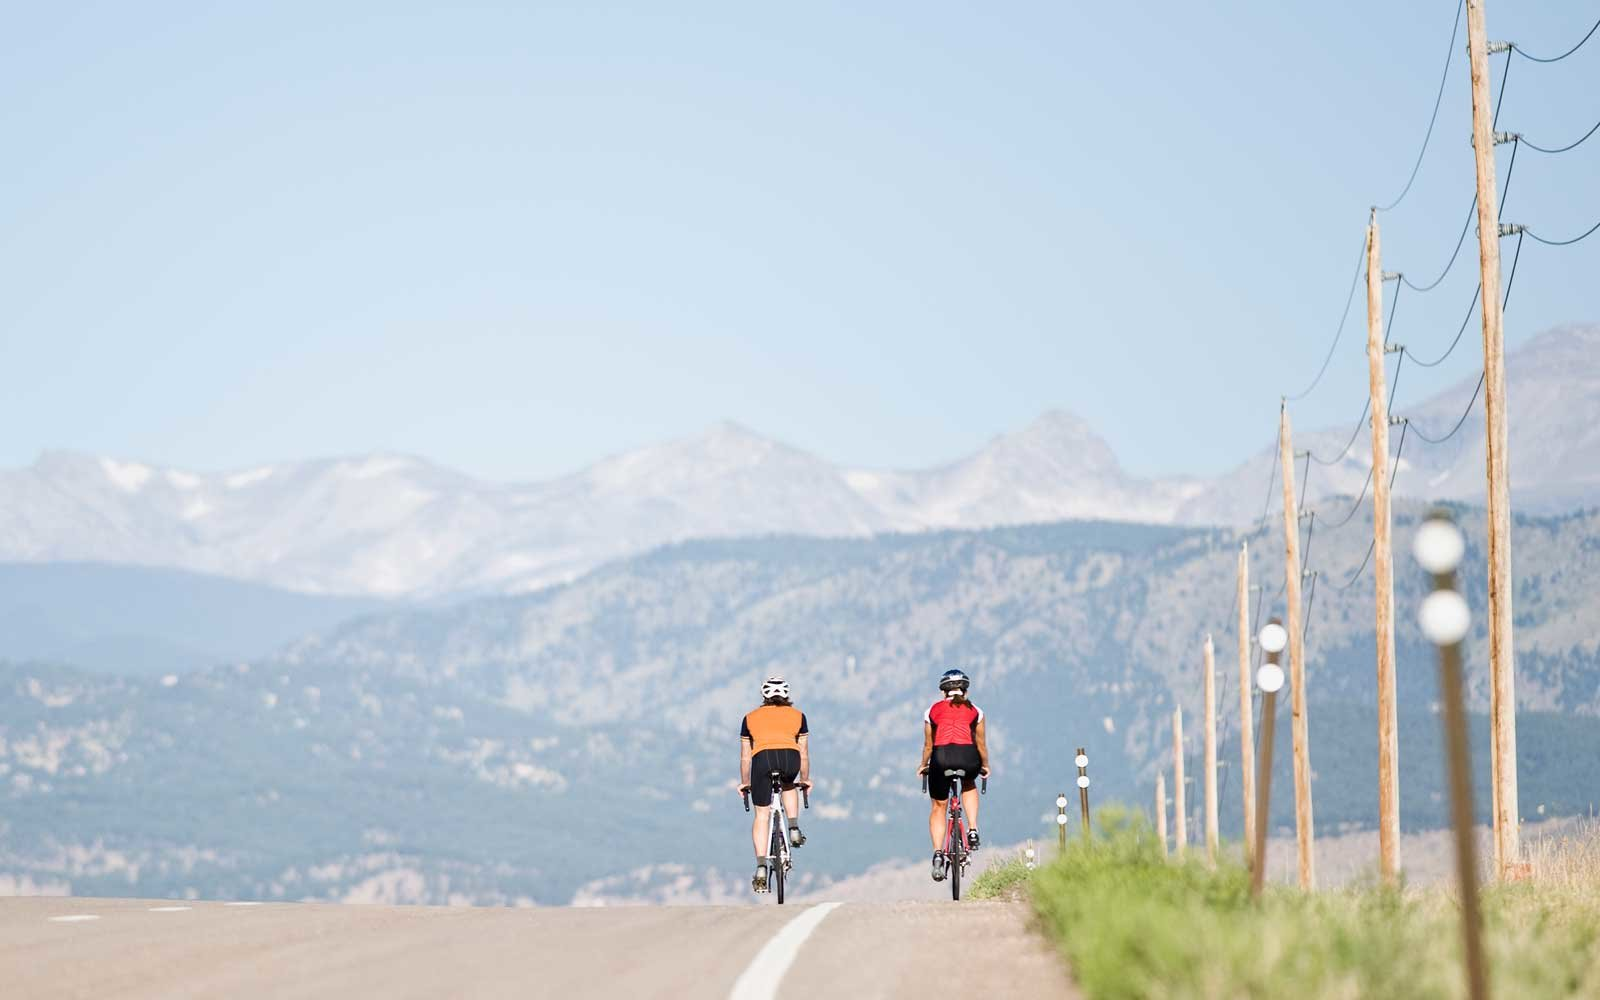 Two cyclists riding on country road, rear view